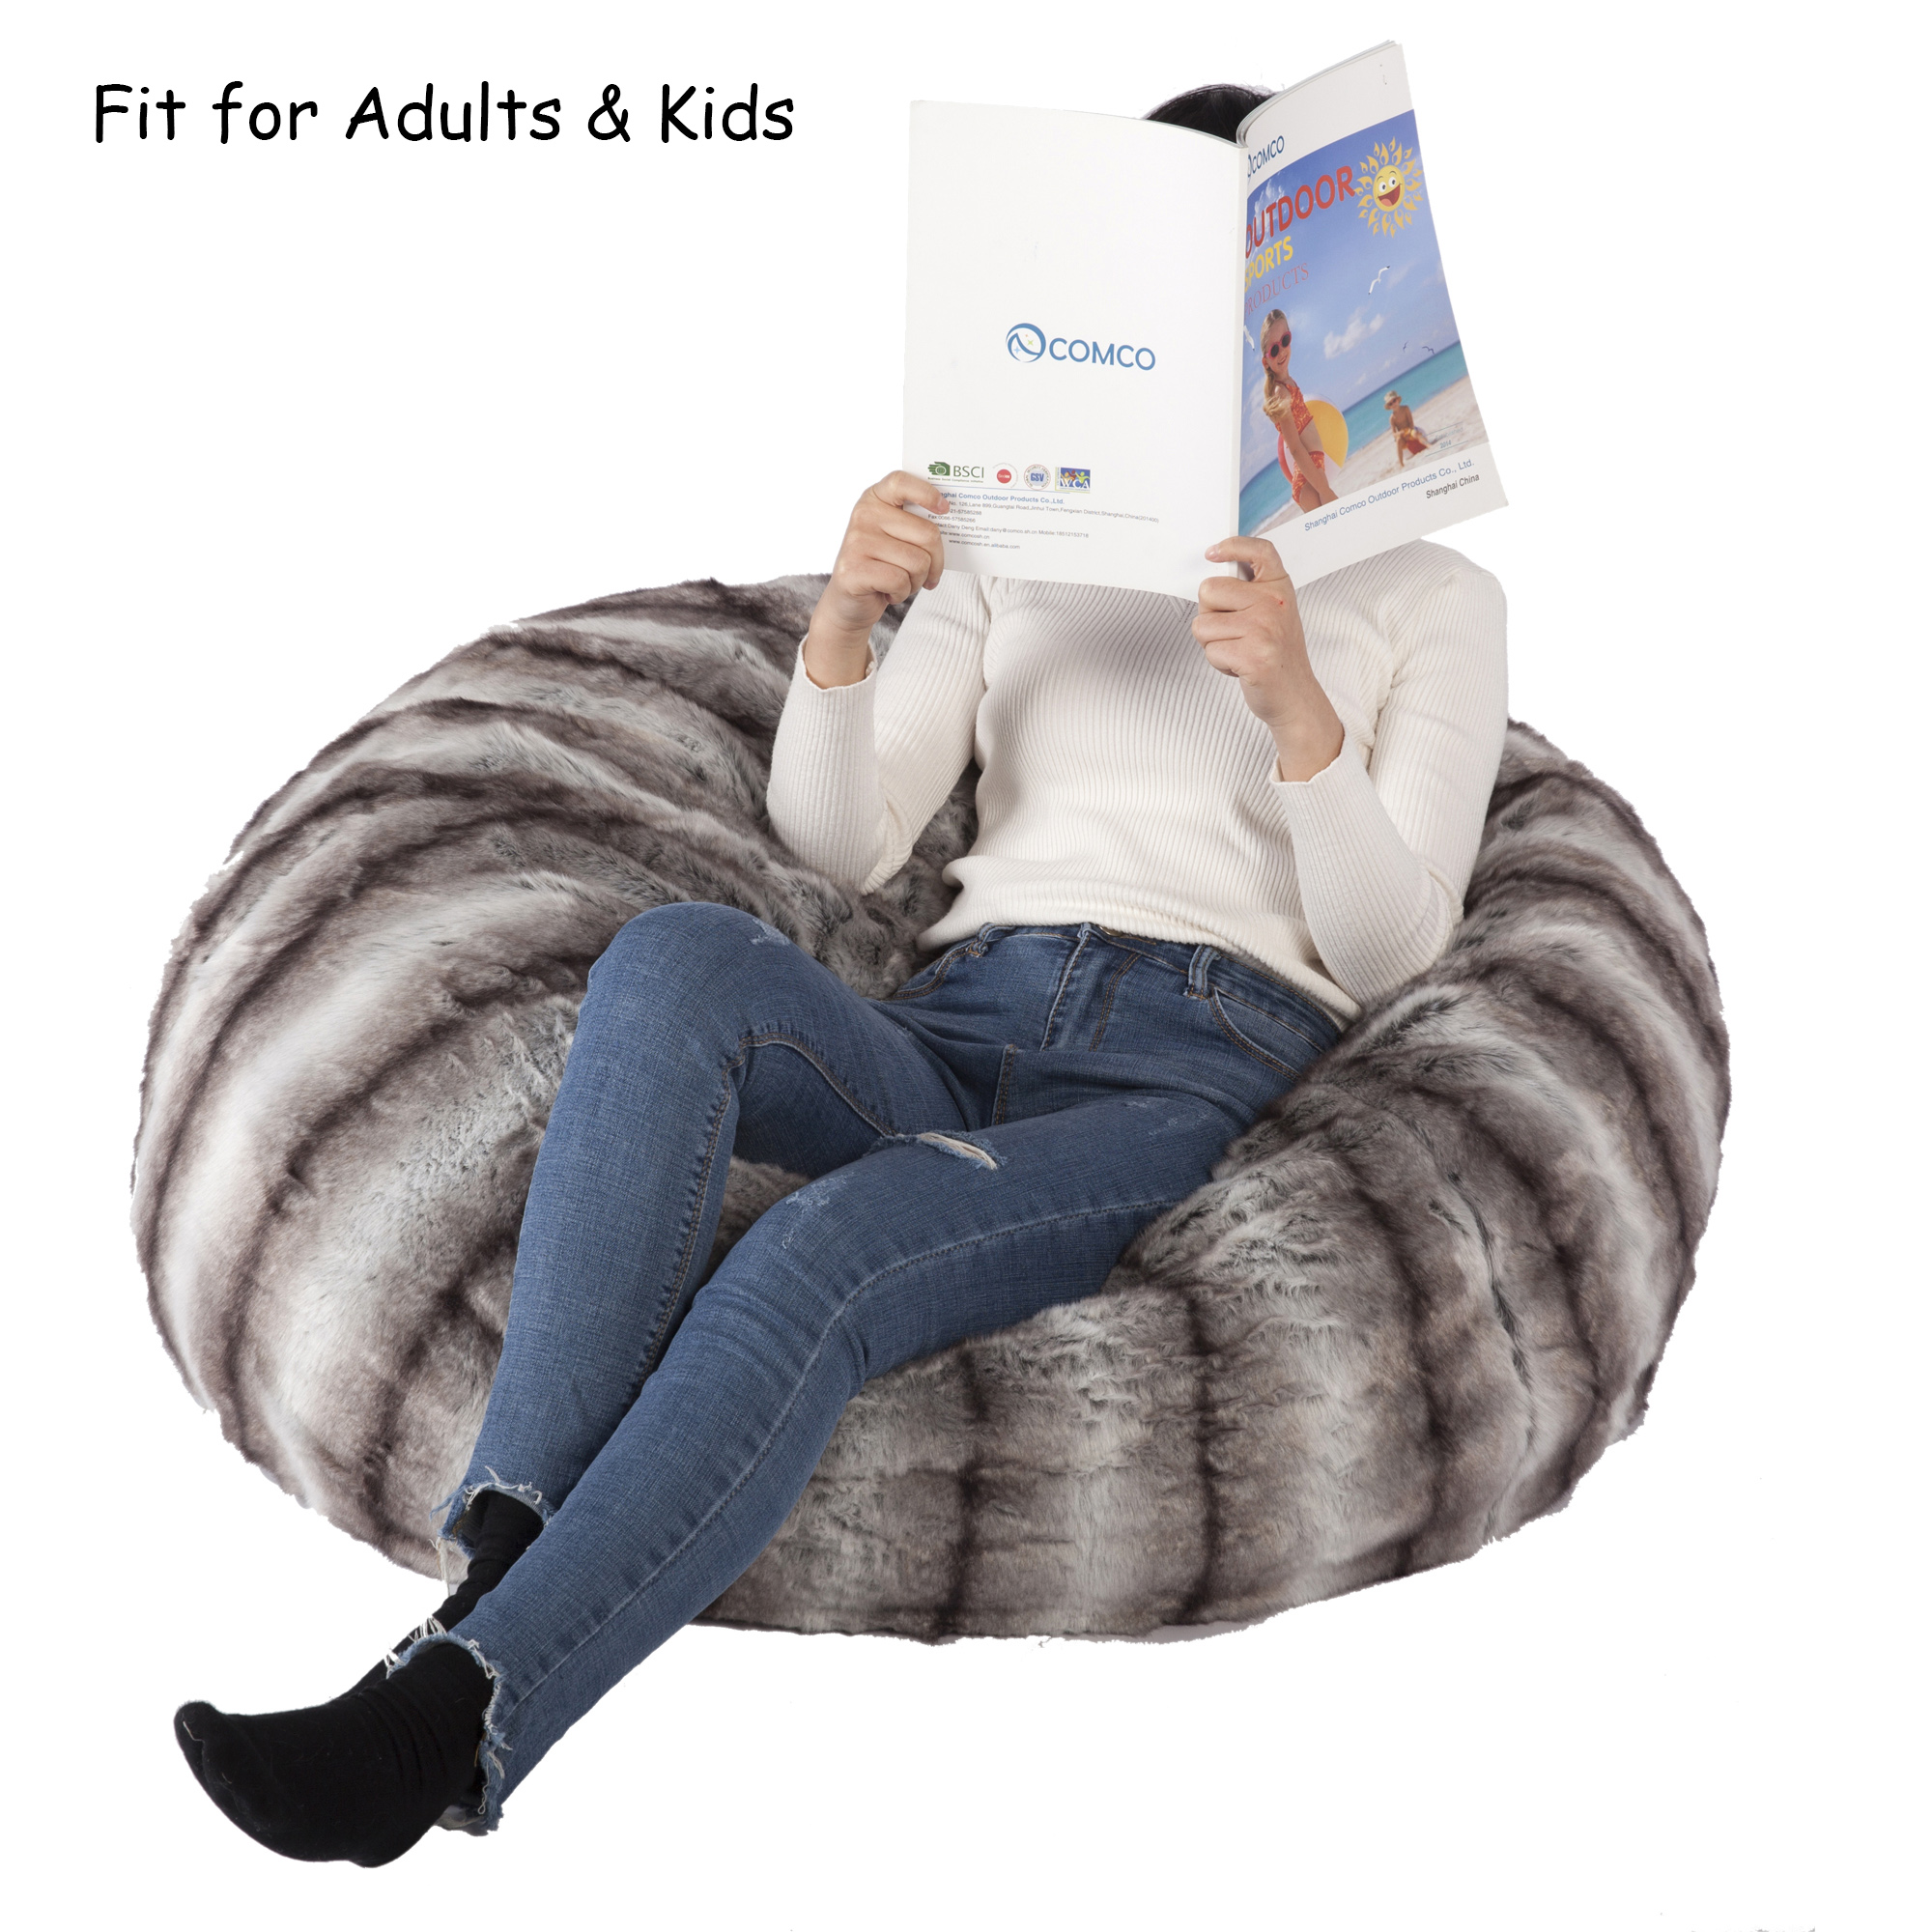 Fine Karmas Product Faux Fur Bean Bag Chair Luxury And Comfy Big Beanless Bag Chairs Plush Furry Chair Soft Sofa Lounger For Adults And Kids Sponge Forskolin Free Trial Chair Design Images Forskolin Free Trialorg